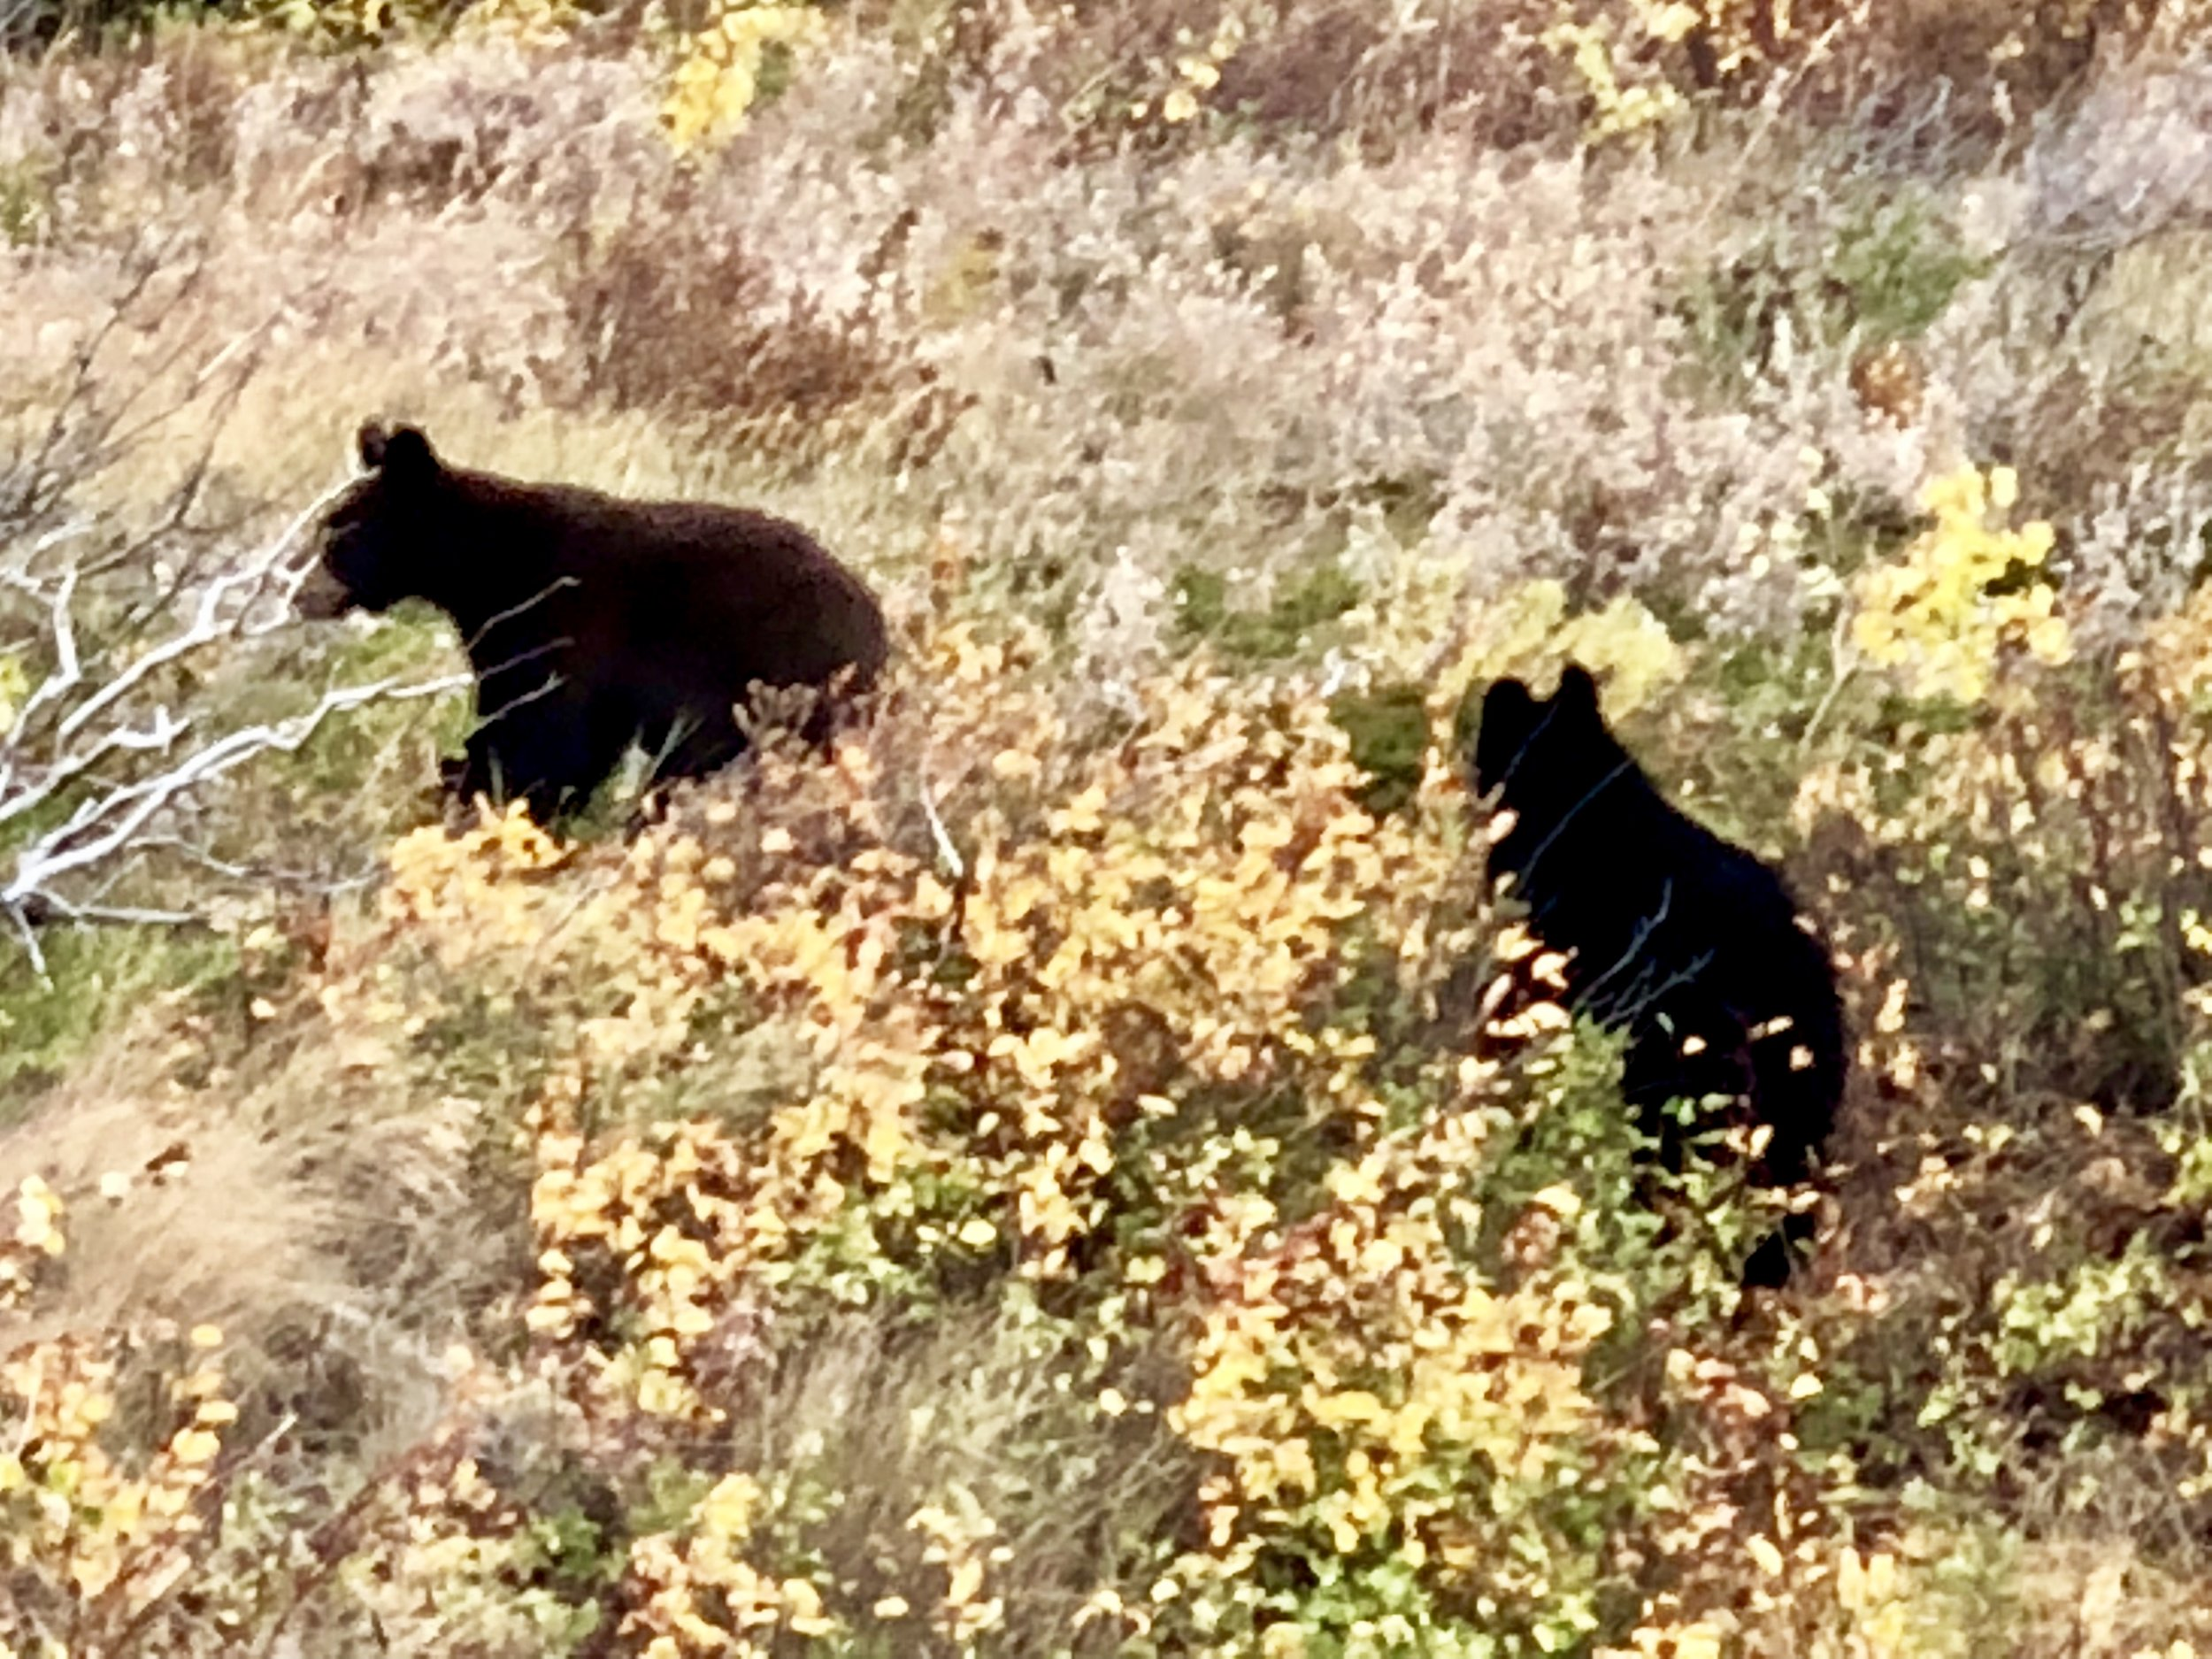 You know what they say about bear cubs. When you see them, look out for mama. We did. She ignored us.